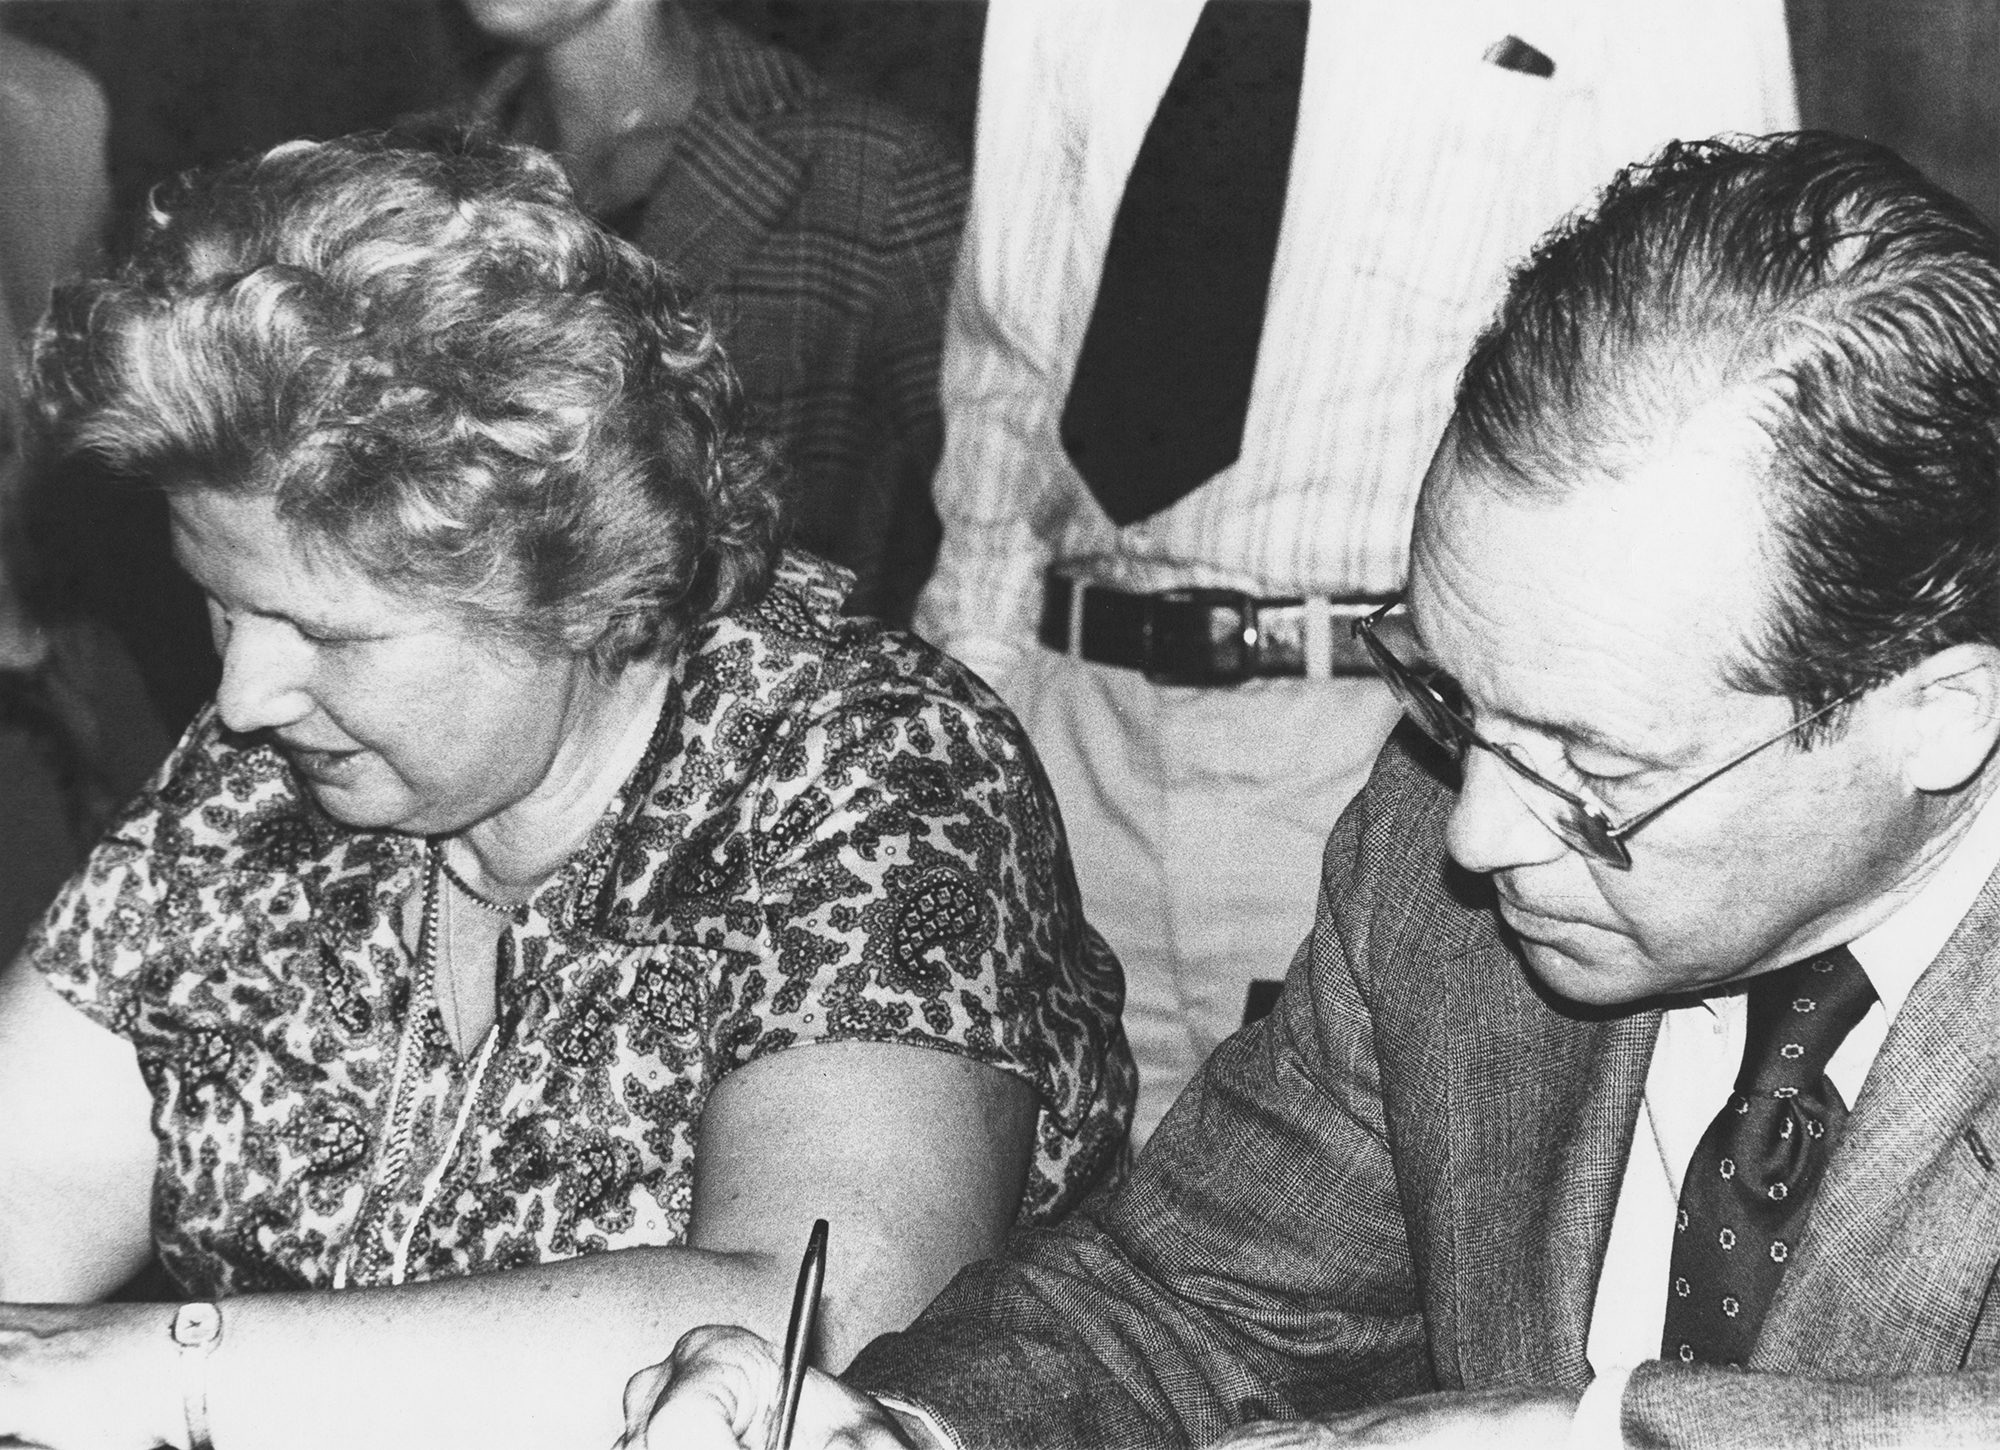 Estelle M. Horowitz signing the UCFT contract with Richardson Pratt, president of Pratt Institute, in 1978